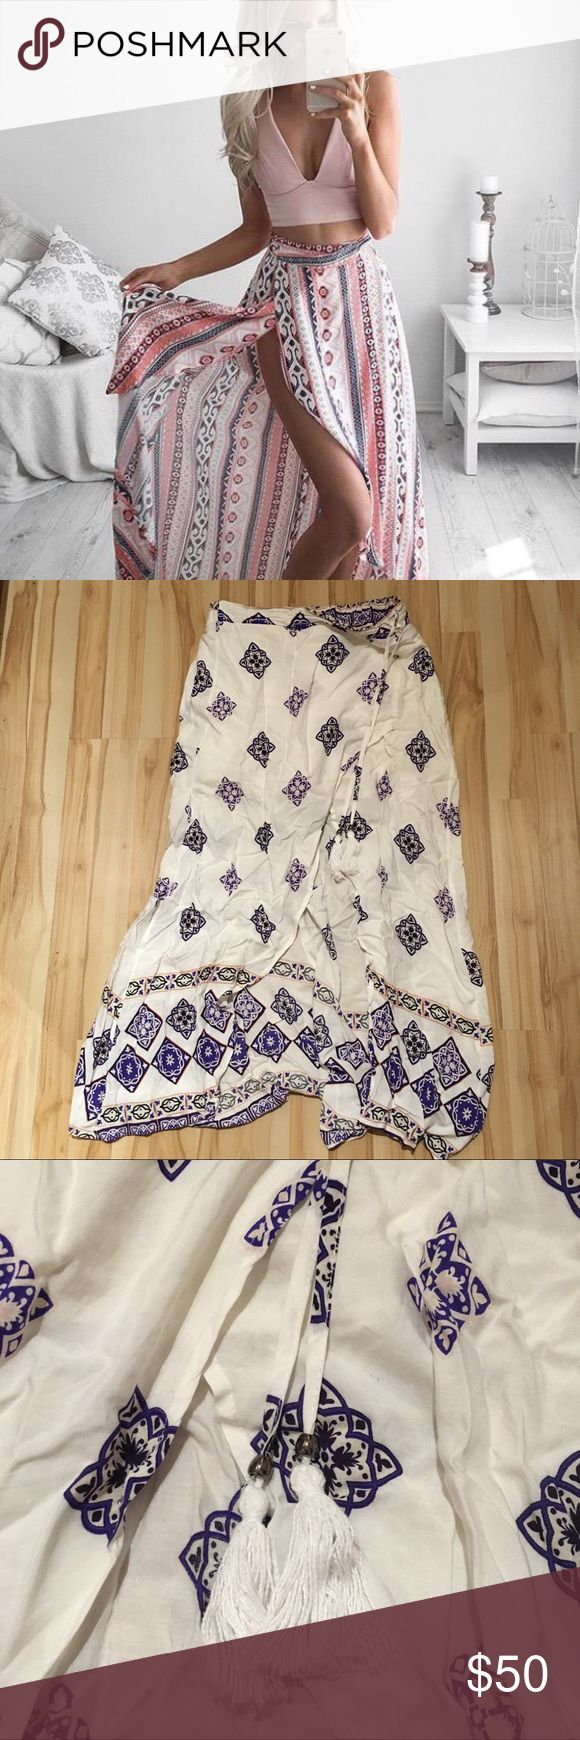 """LF Tribal maxi skirt White and blue LF maxi skirt with slit front and tie detail. Gorgeous and perfect for summer! Lined half way, slit to mid thigh, faux tie detail, elastic waist. Like new! First picture is to show style only! Medium, but can fit small. I'm 5'10"""" so this doesn't come all the way to the ground on me, but about ankle length. Would be longer on someone shorter. LF Skirts Maxi"""